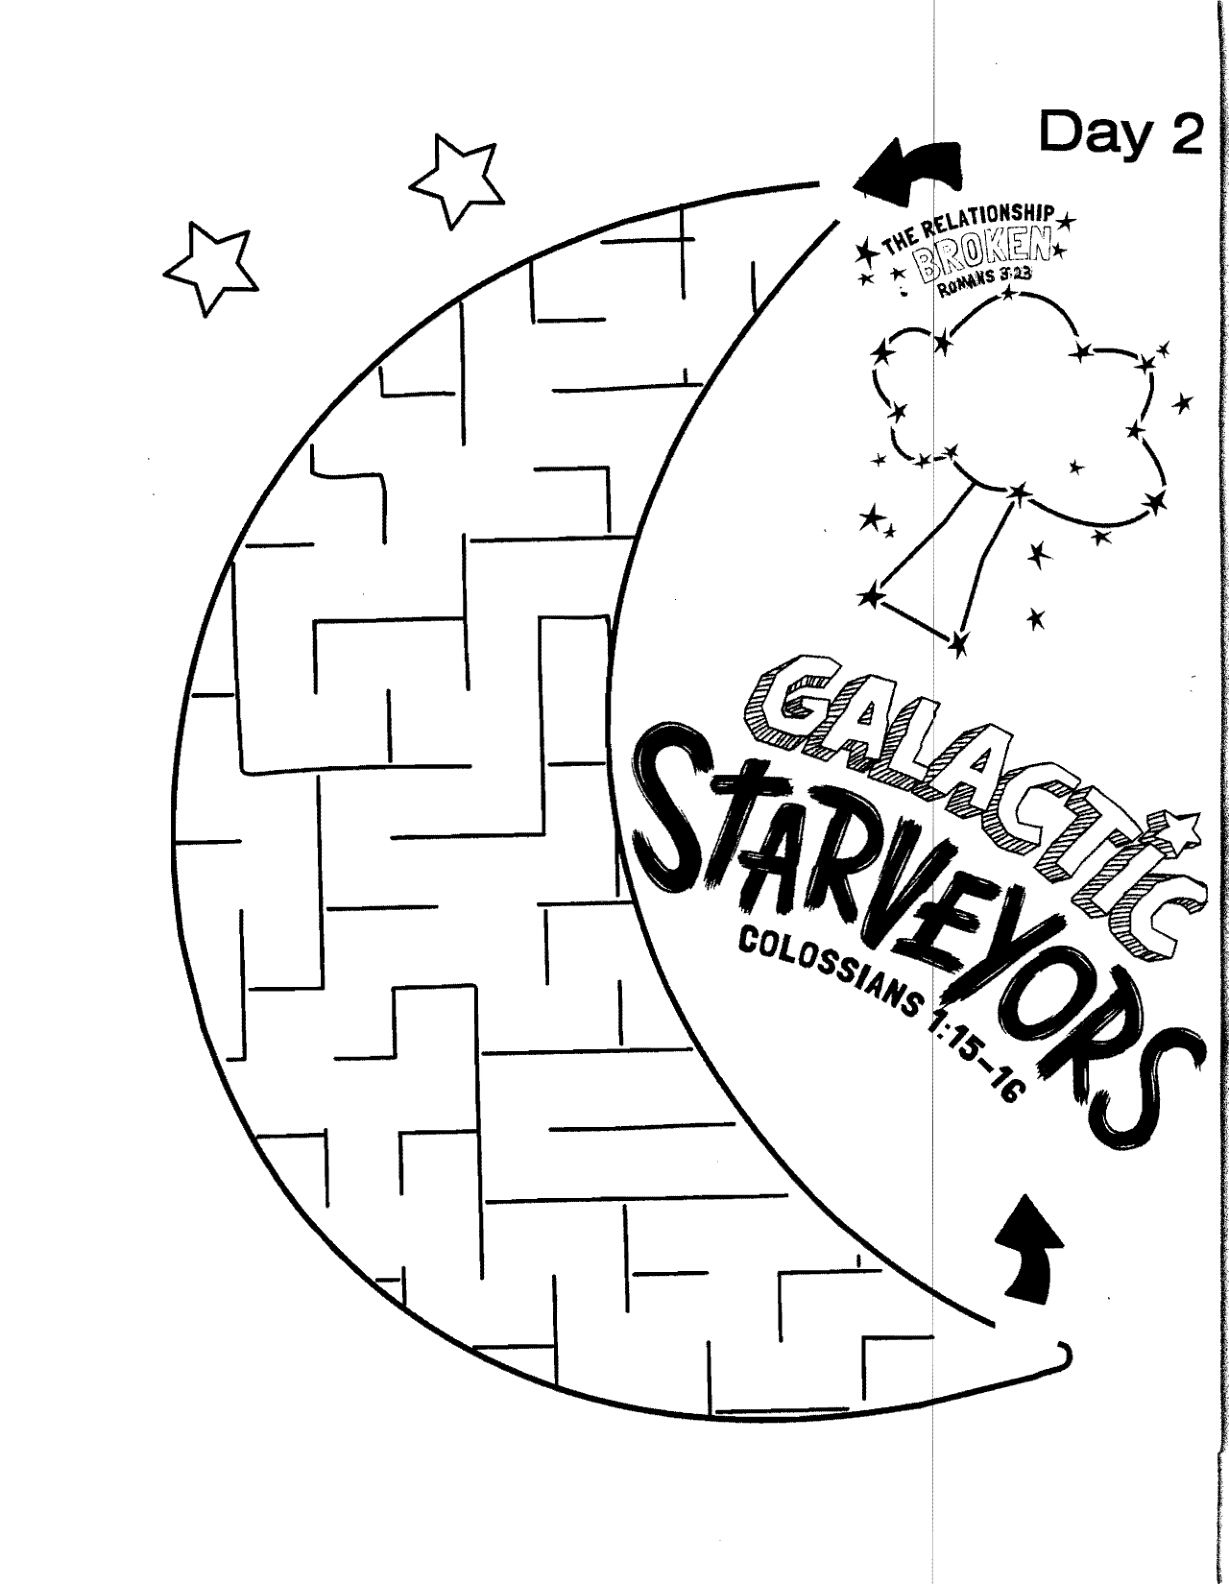 Galactic Starveyors Coloring Sheet VBS 2017 Day 2 Easy Maze